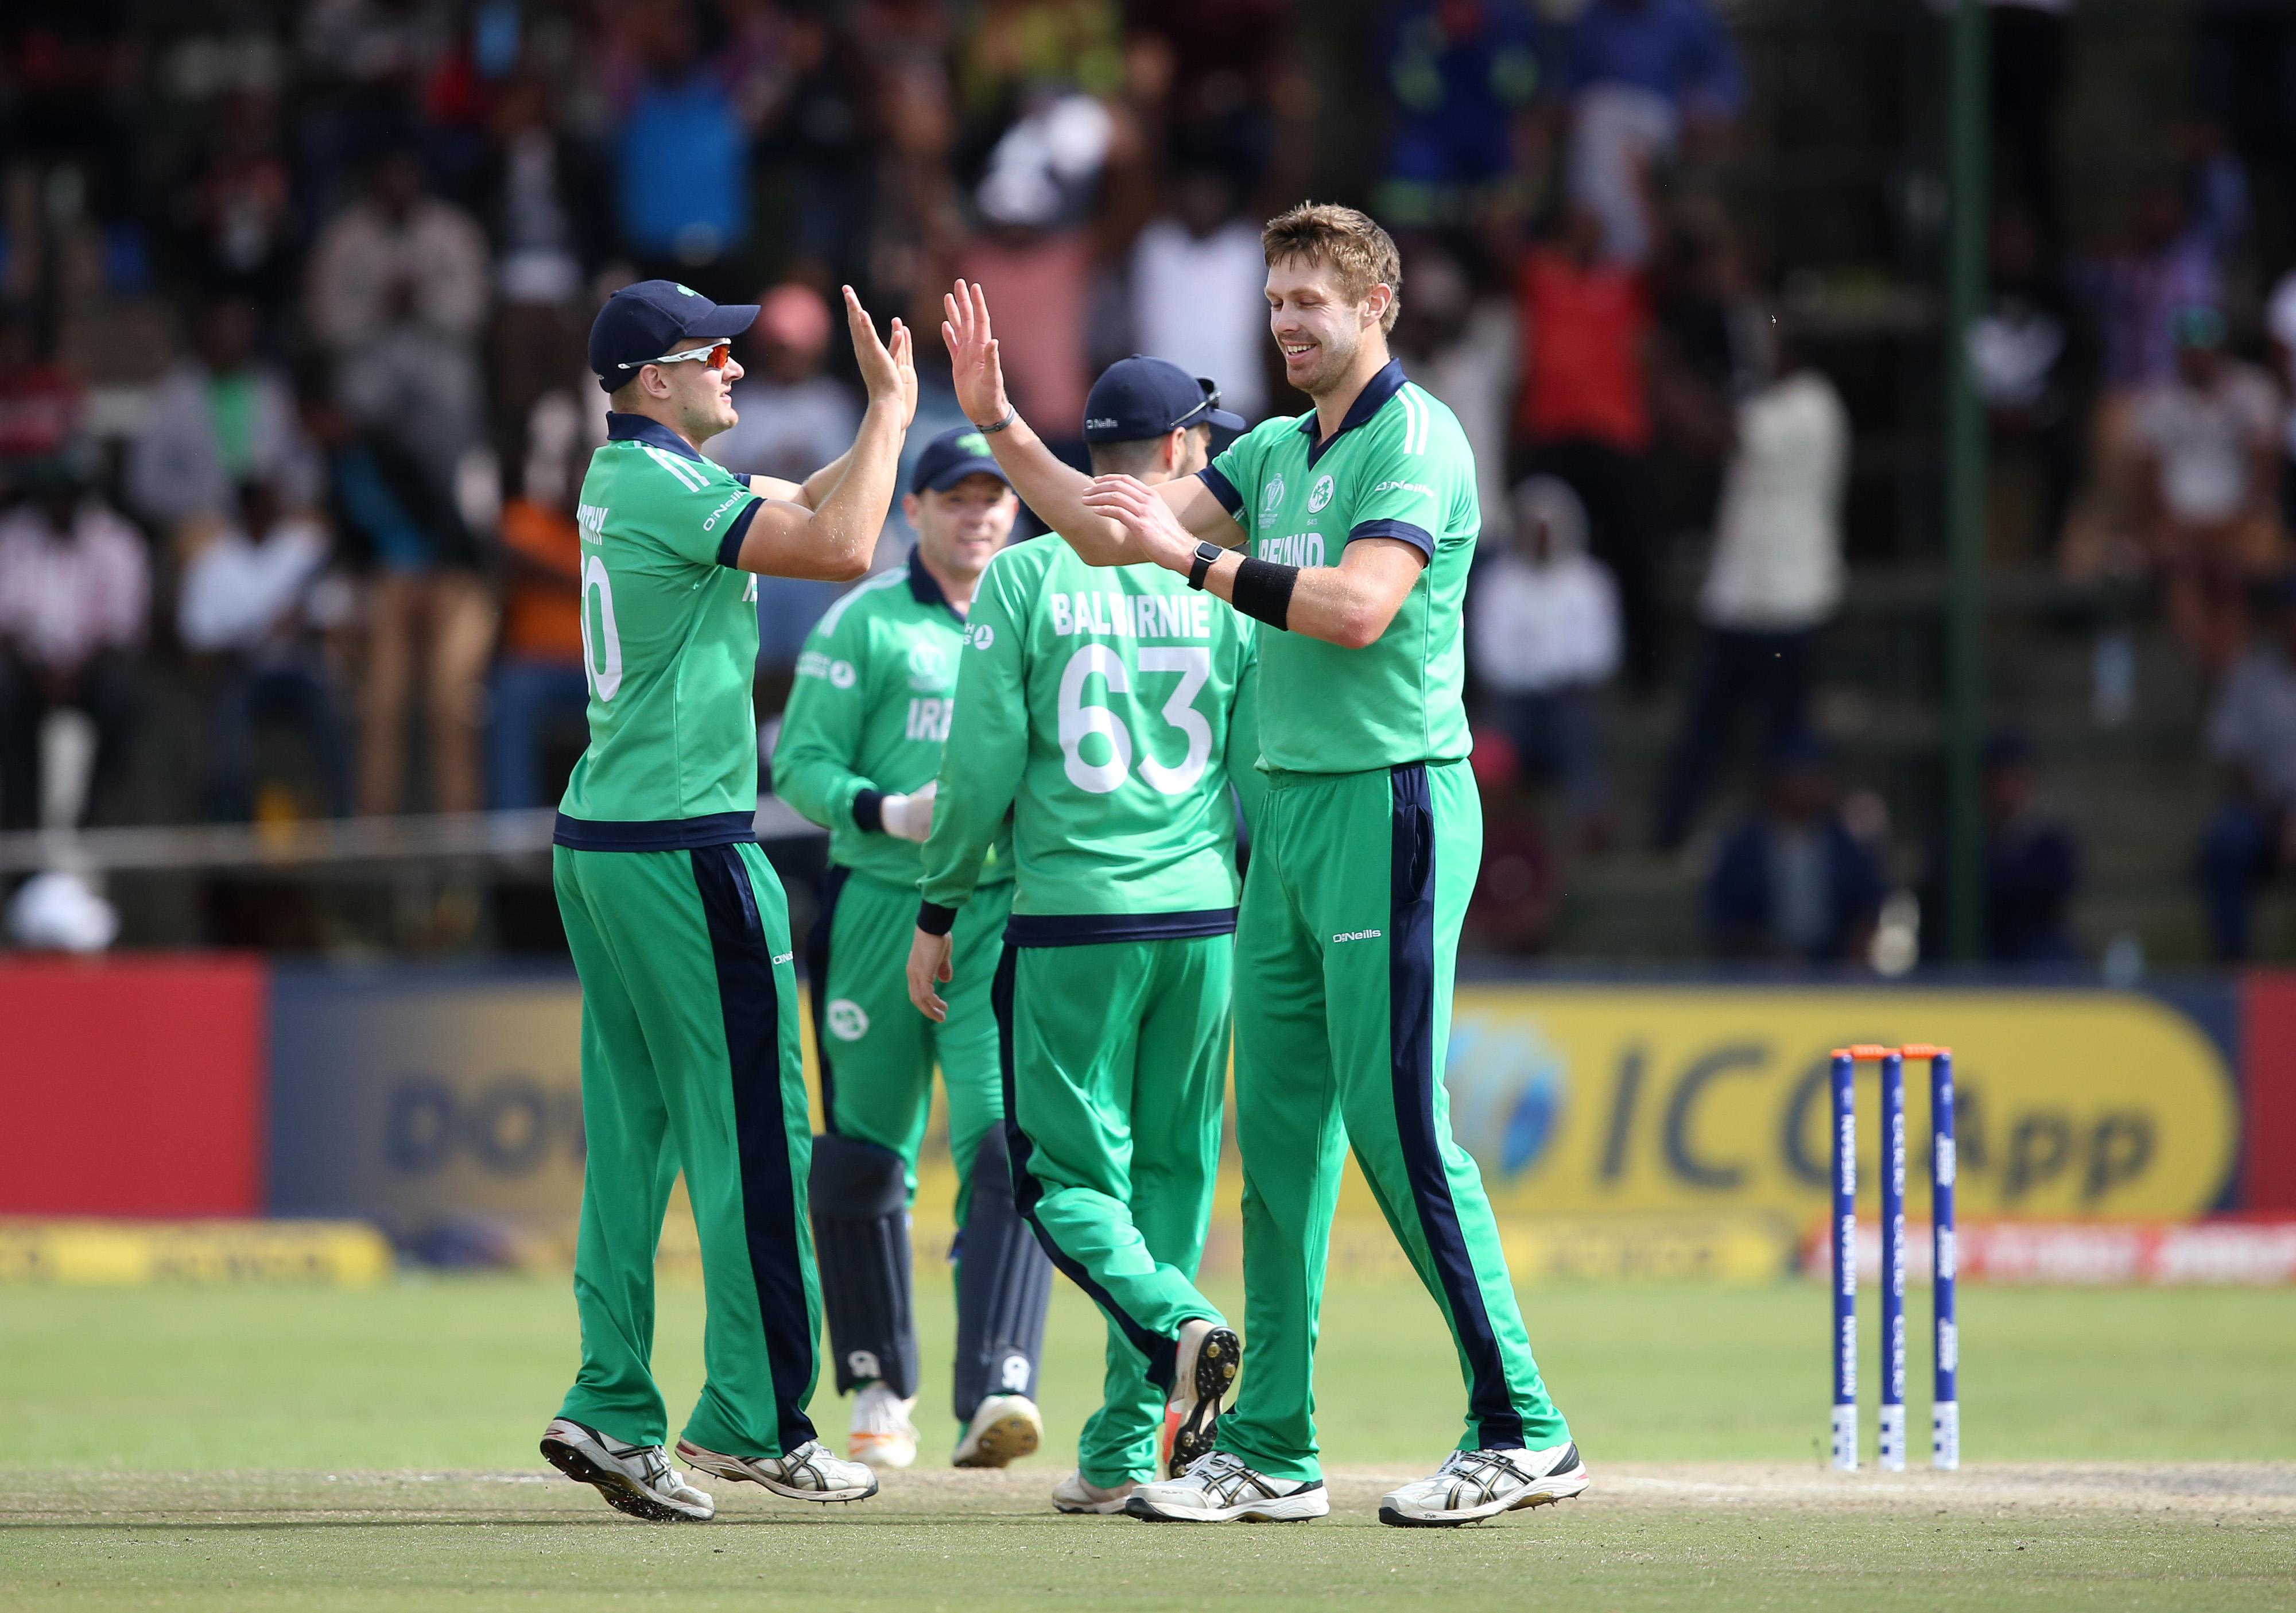 Ireland are playing their first ever Test match against Pakistan